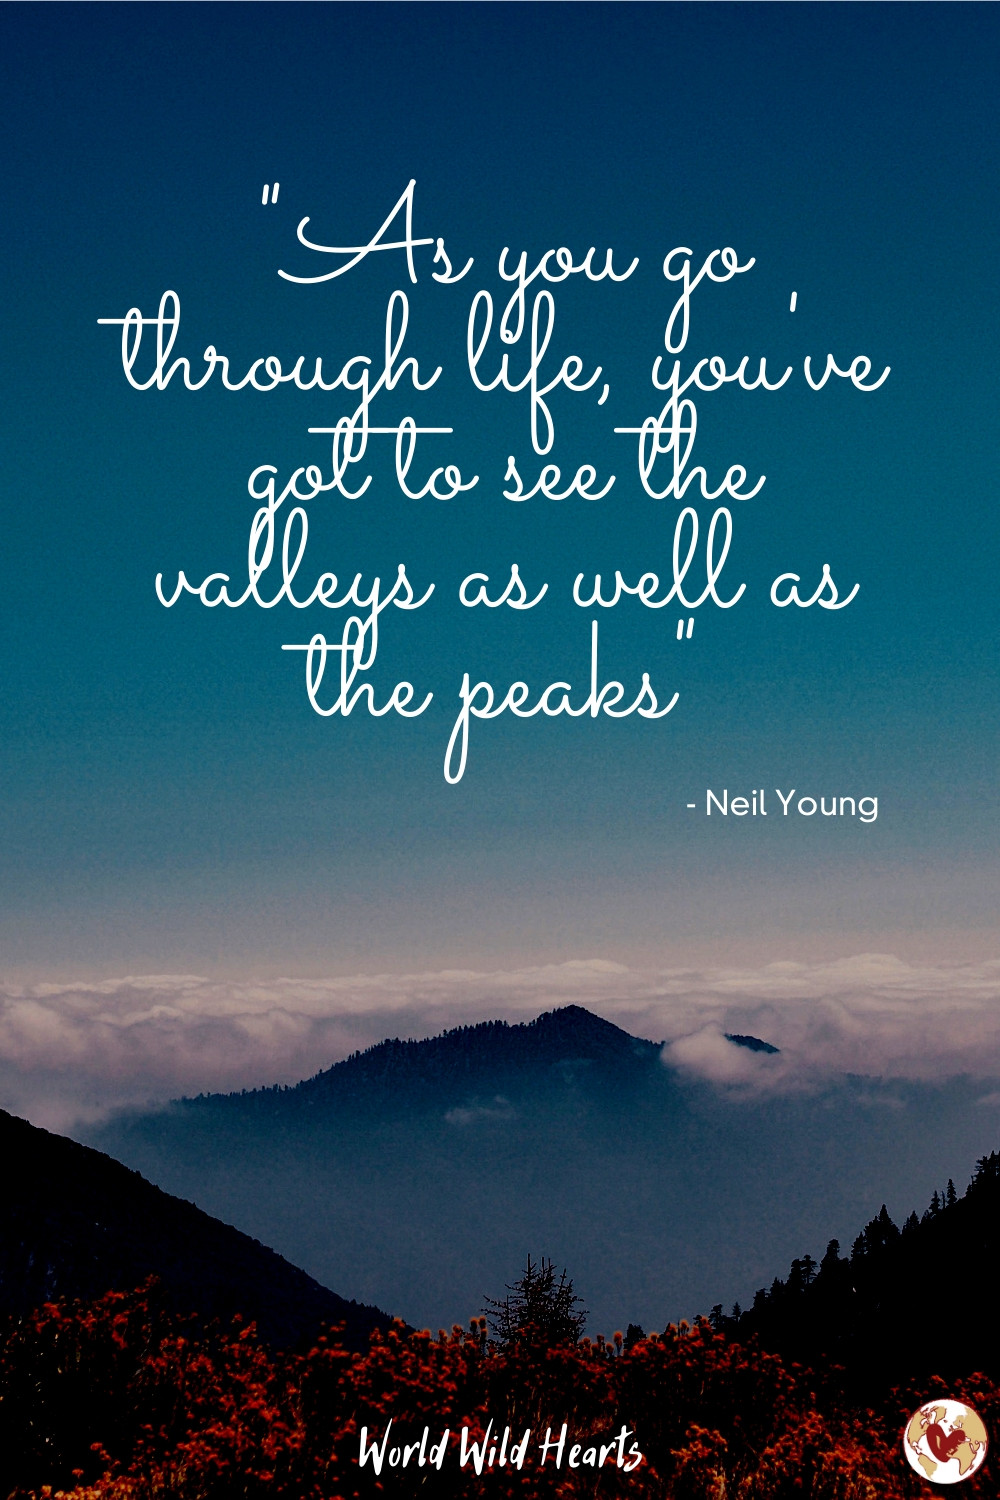 Neil Young famous quote about travel